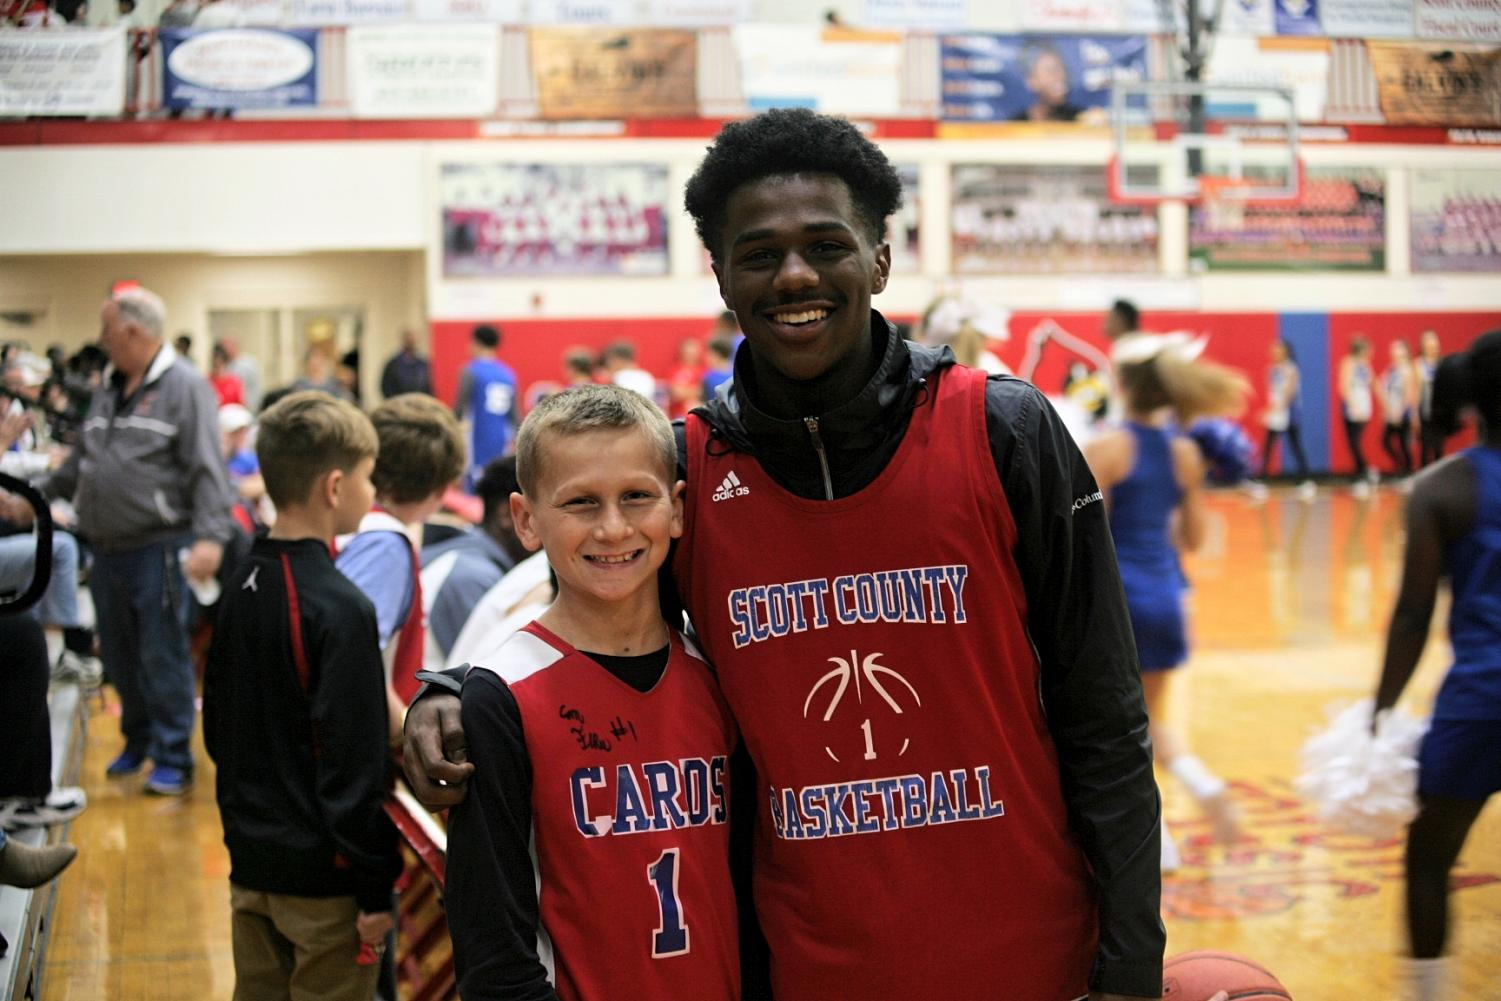 Meet the Cards provides the opportunity for middle school and high school athletes to share in the excitement of the season's start.